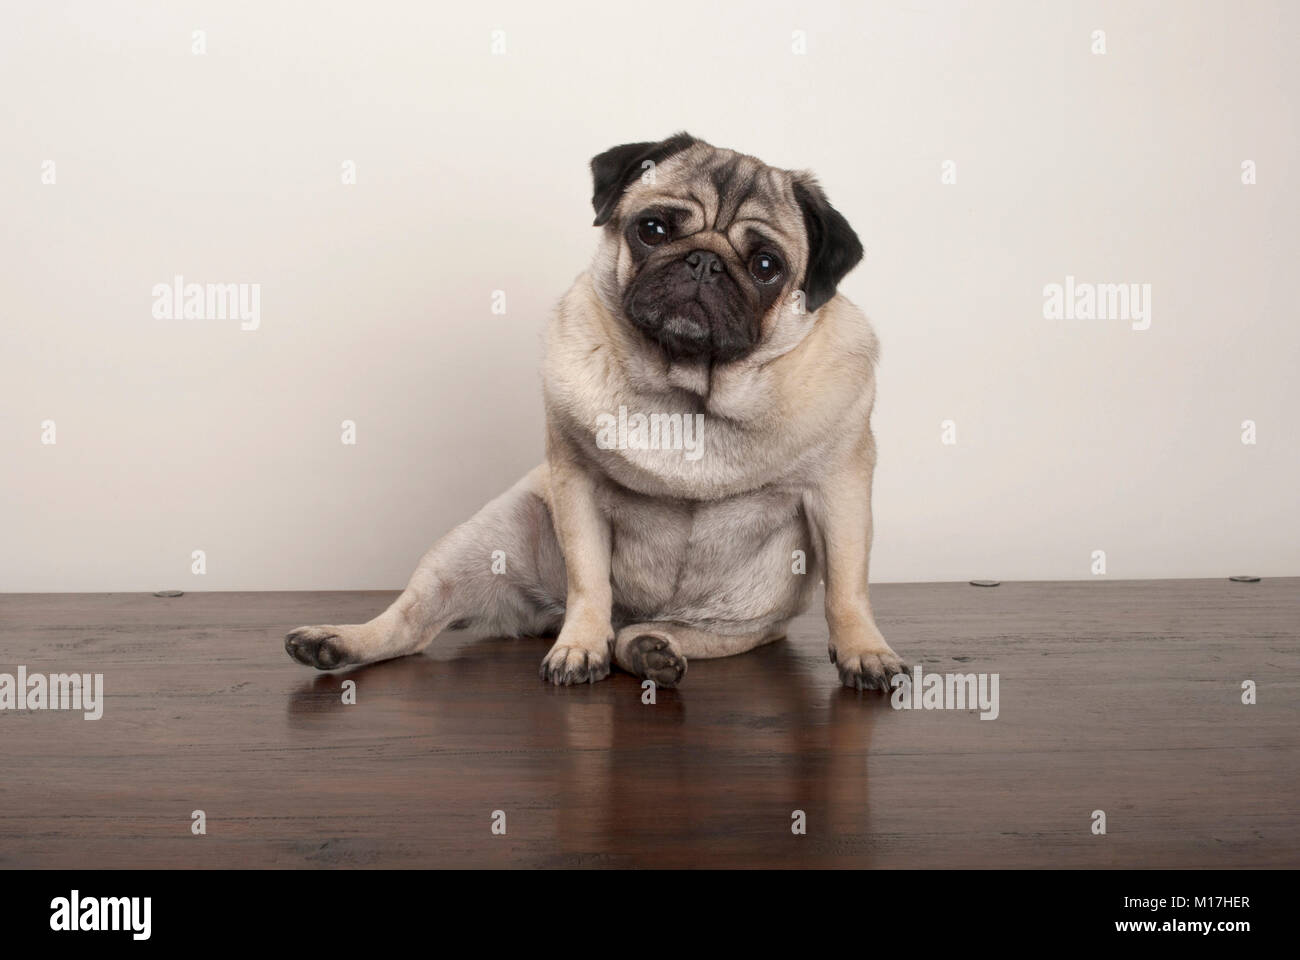 sweet funny pug puppy dog sitting down on wooden ground, on plain background - Stock Image